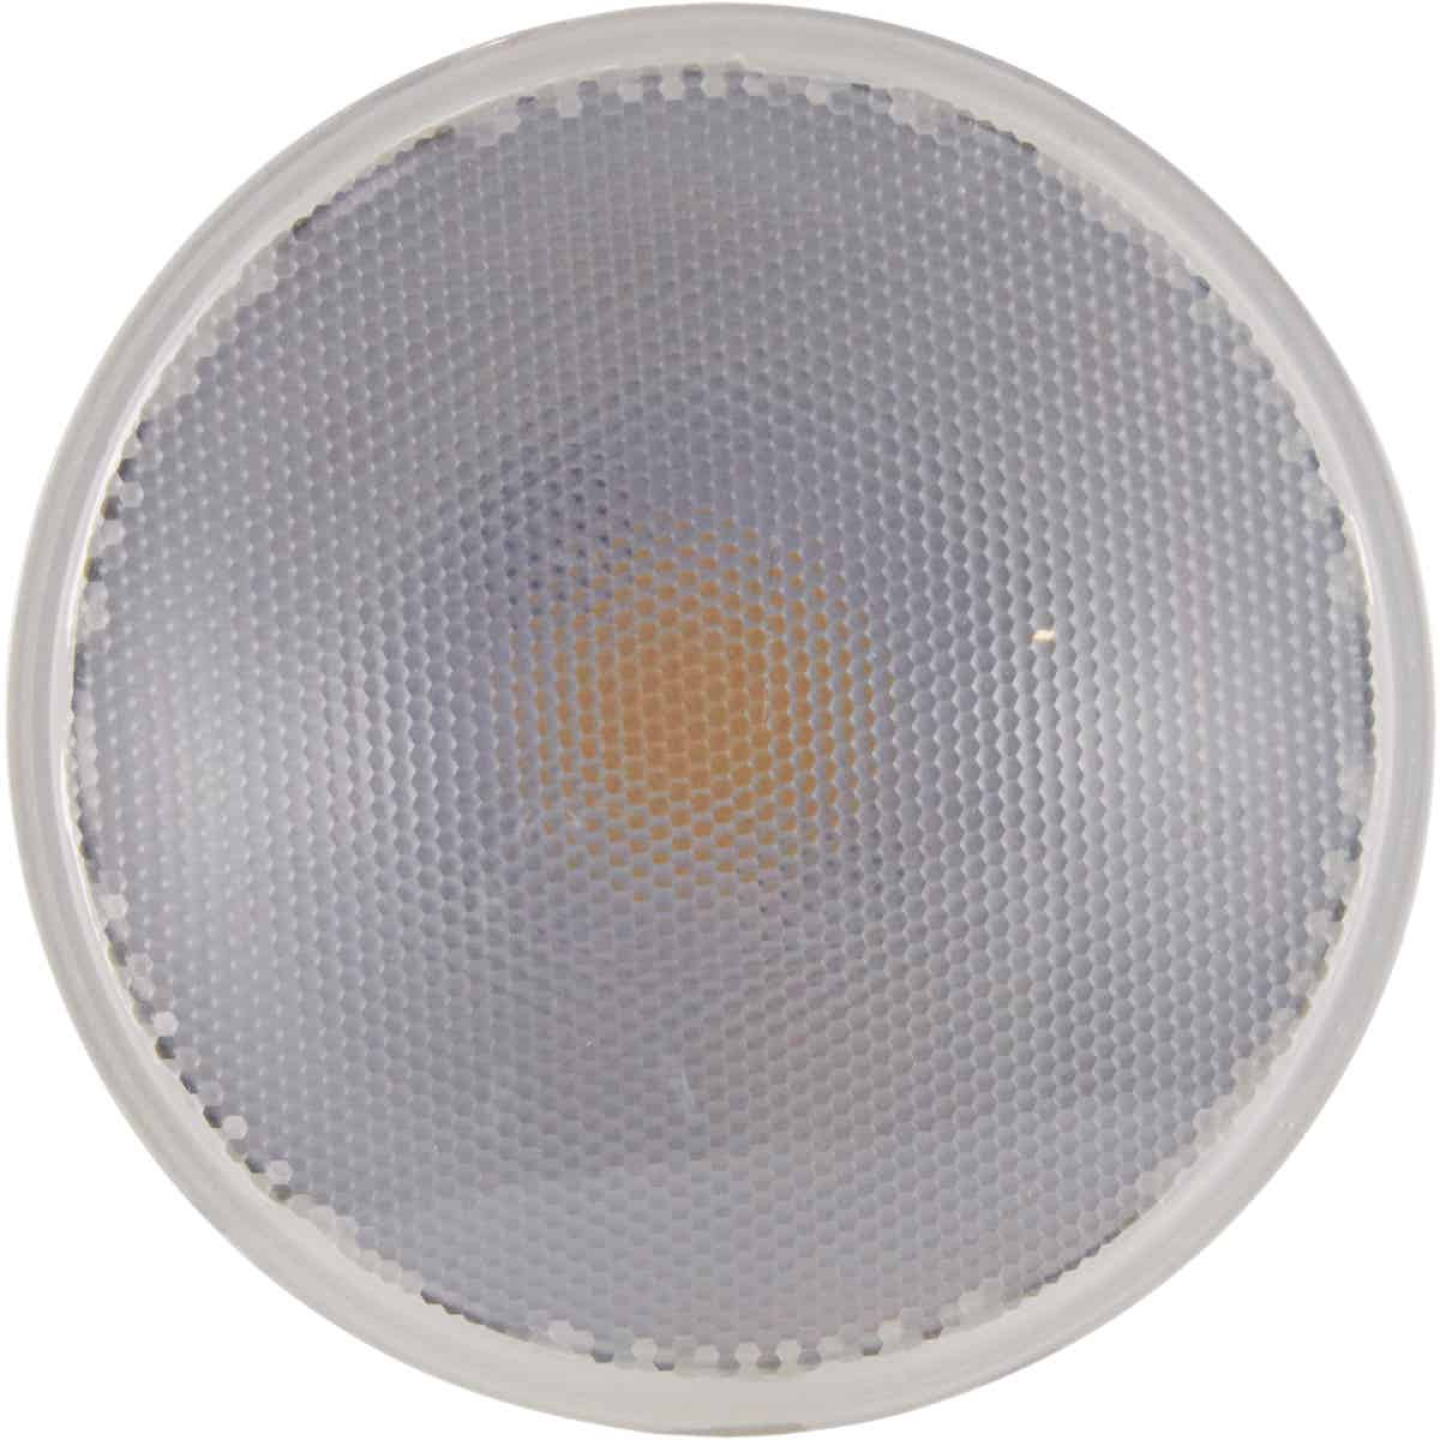 Satco Nuvo 90W Equivalent Warm White PAR38 Medium Dimmable LED Floodlight Light Bulb Image 4